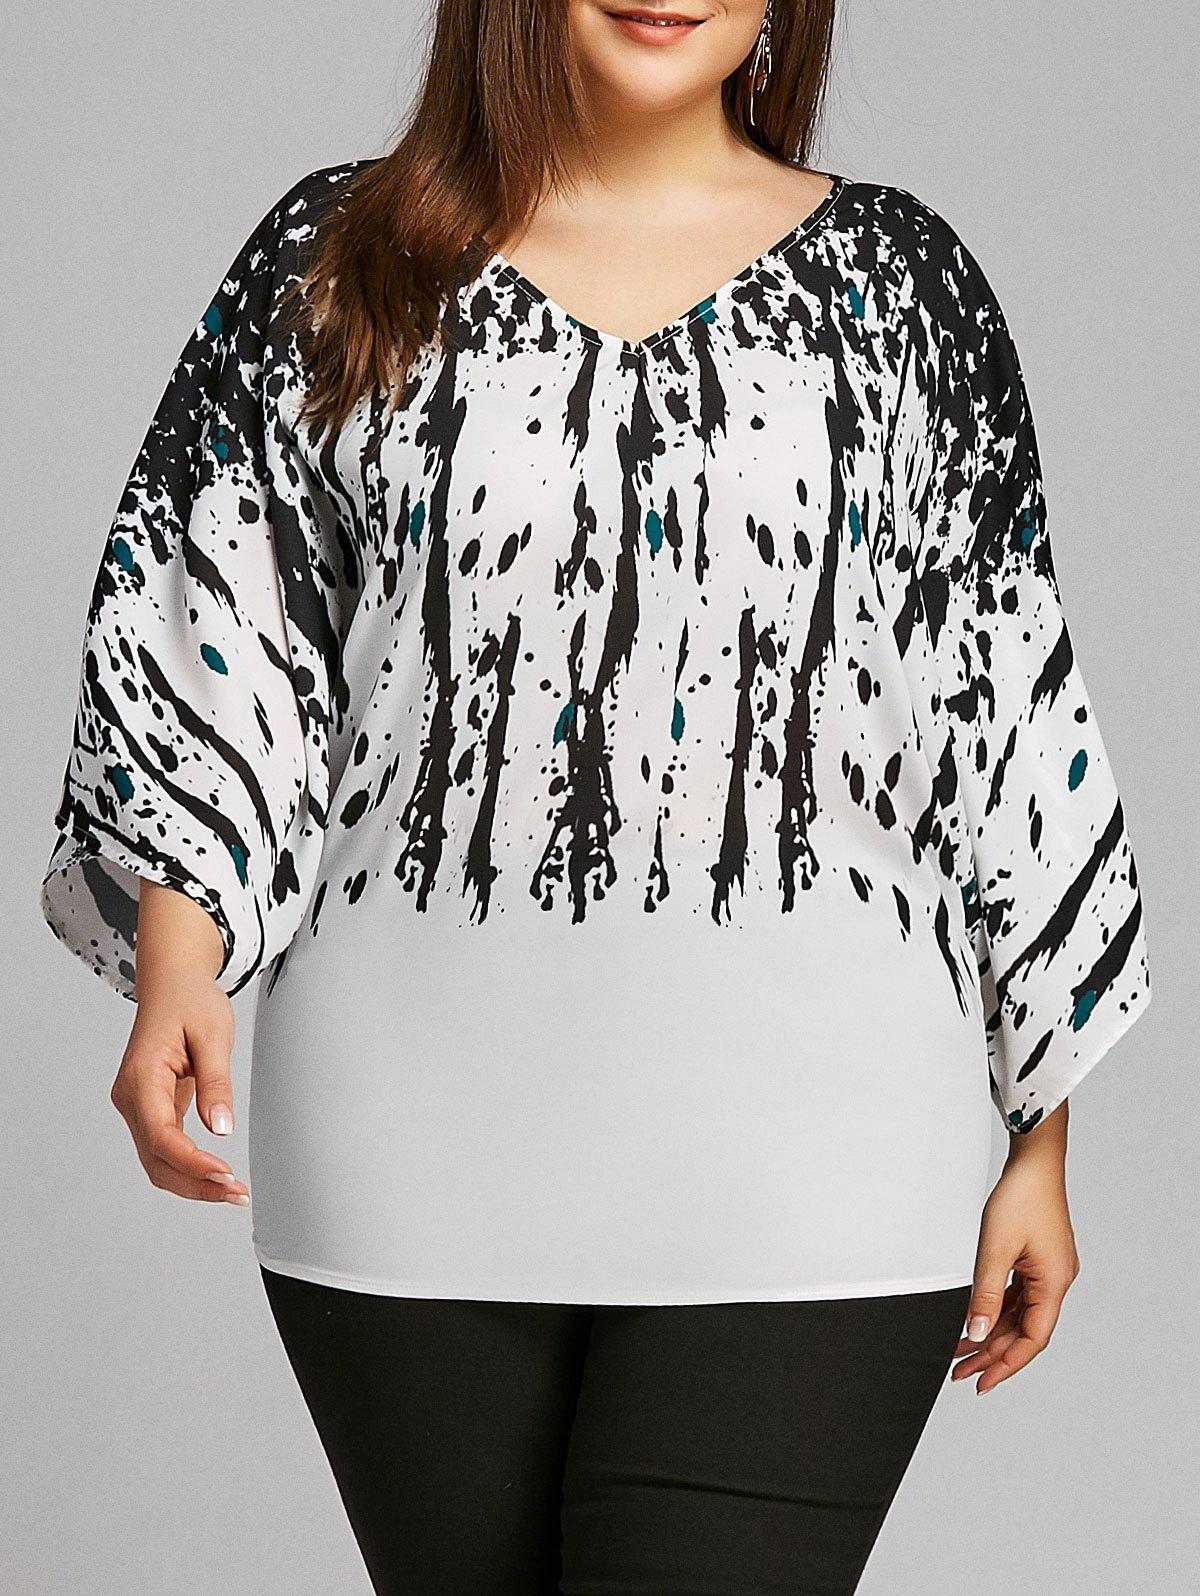 Plus Size Splatter Paint V Neck Blouse - WHITE/BLACK 5XL